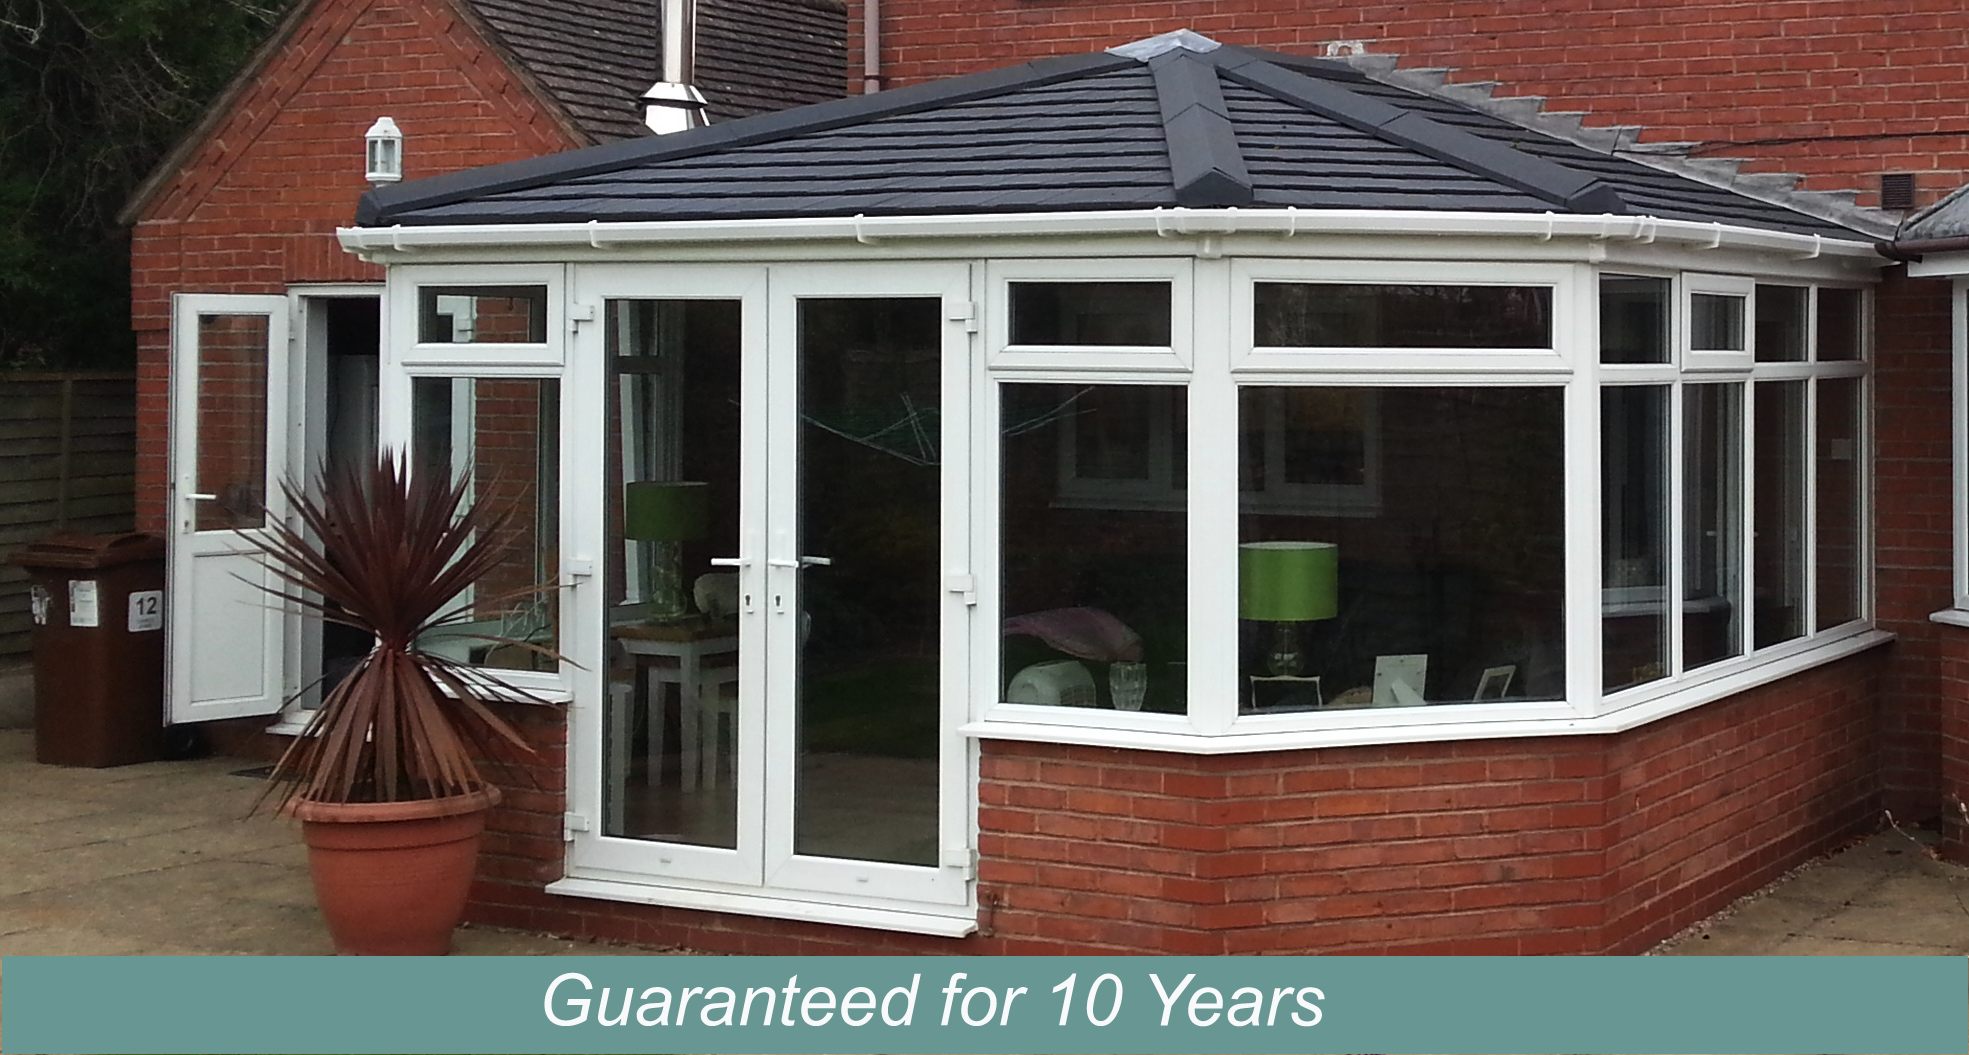 All Our Solid Conservatoryroofs Are Designed And Fabricated To The Exact Specification For Your Roof And Is Tailor Built For Conservatory Roof Roof S Building